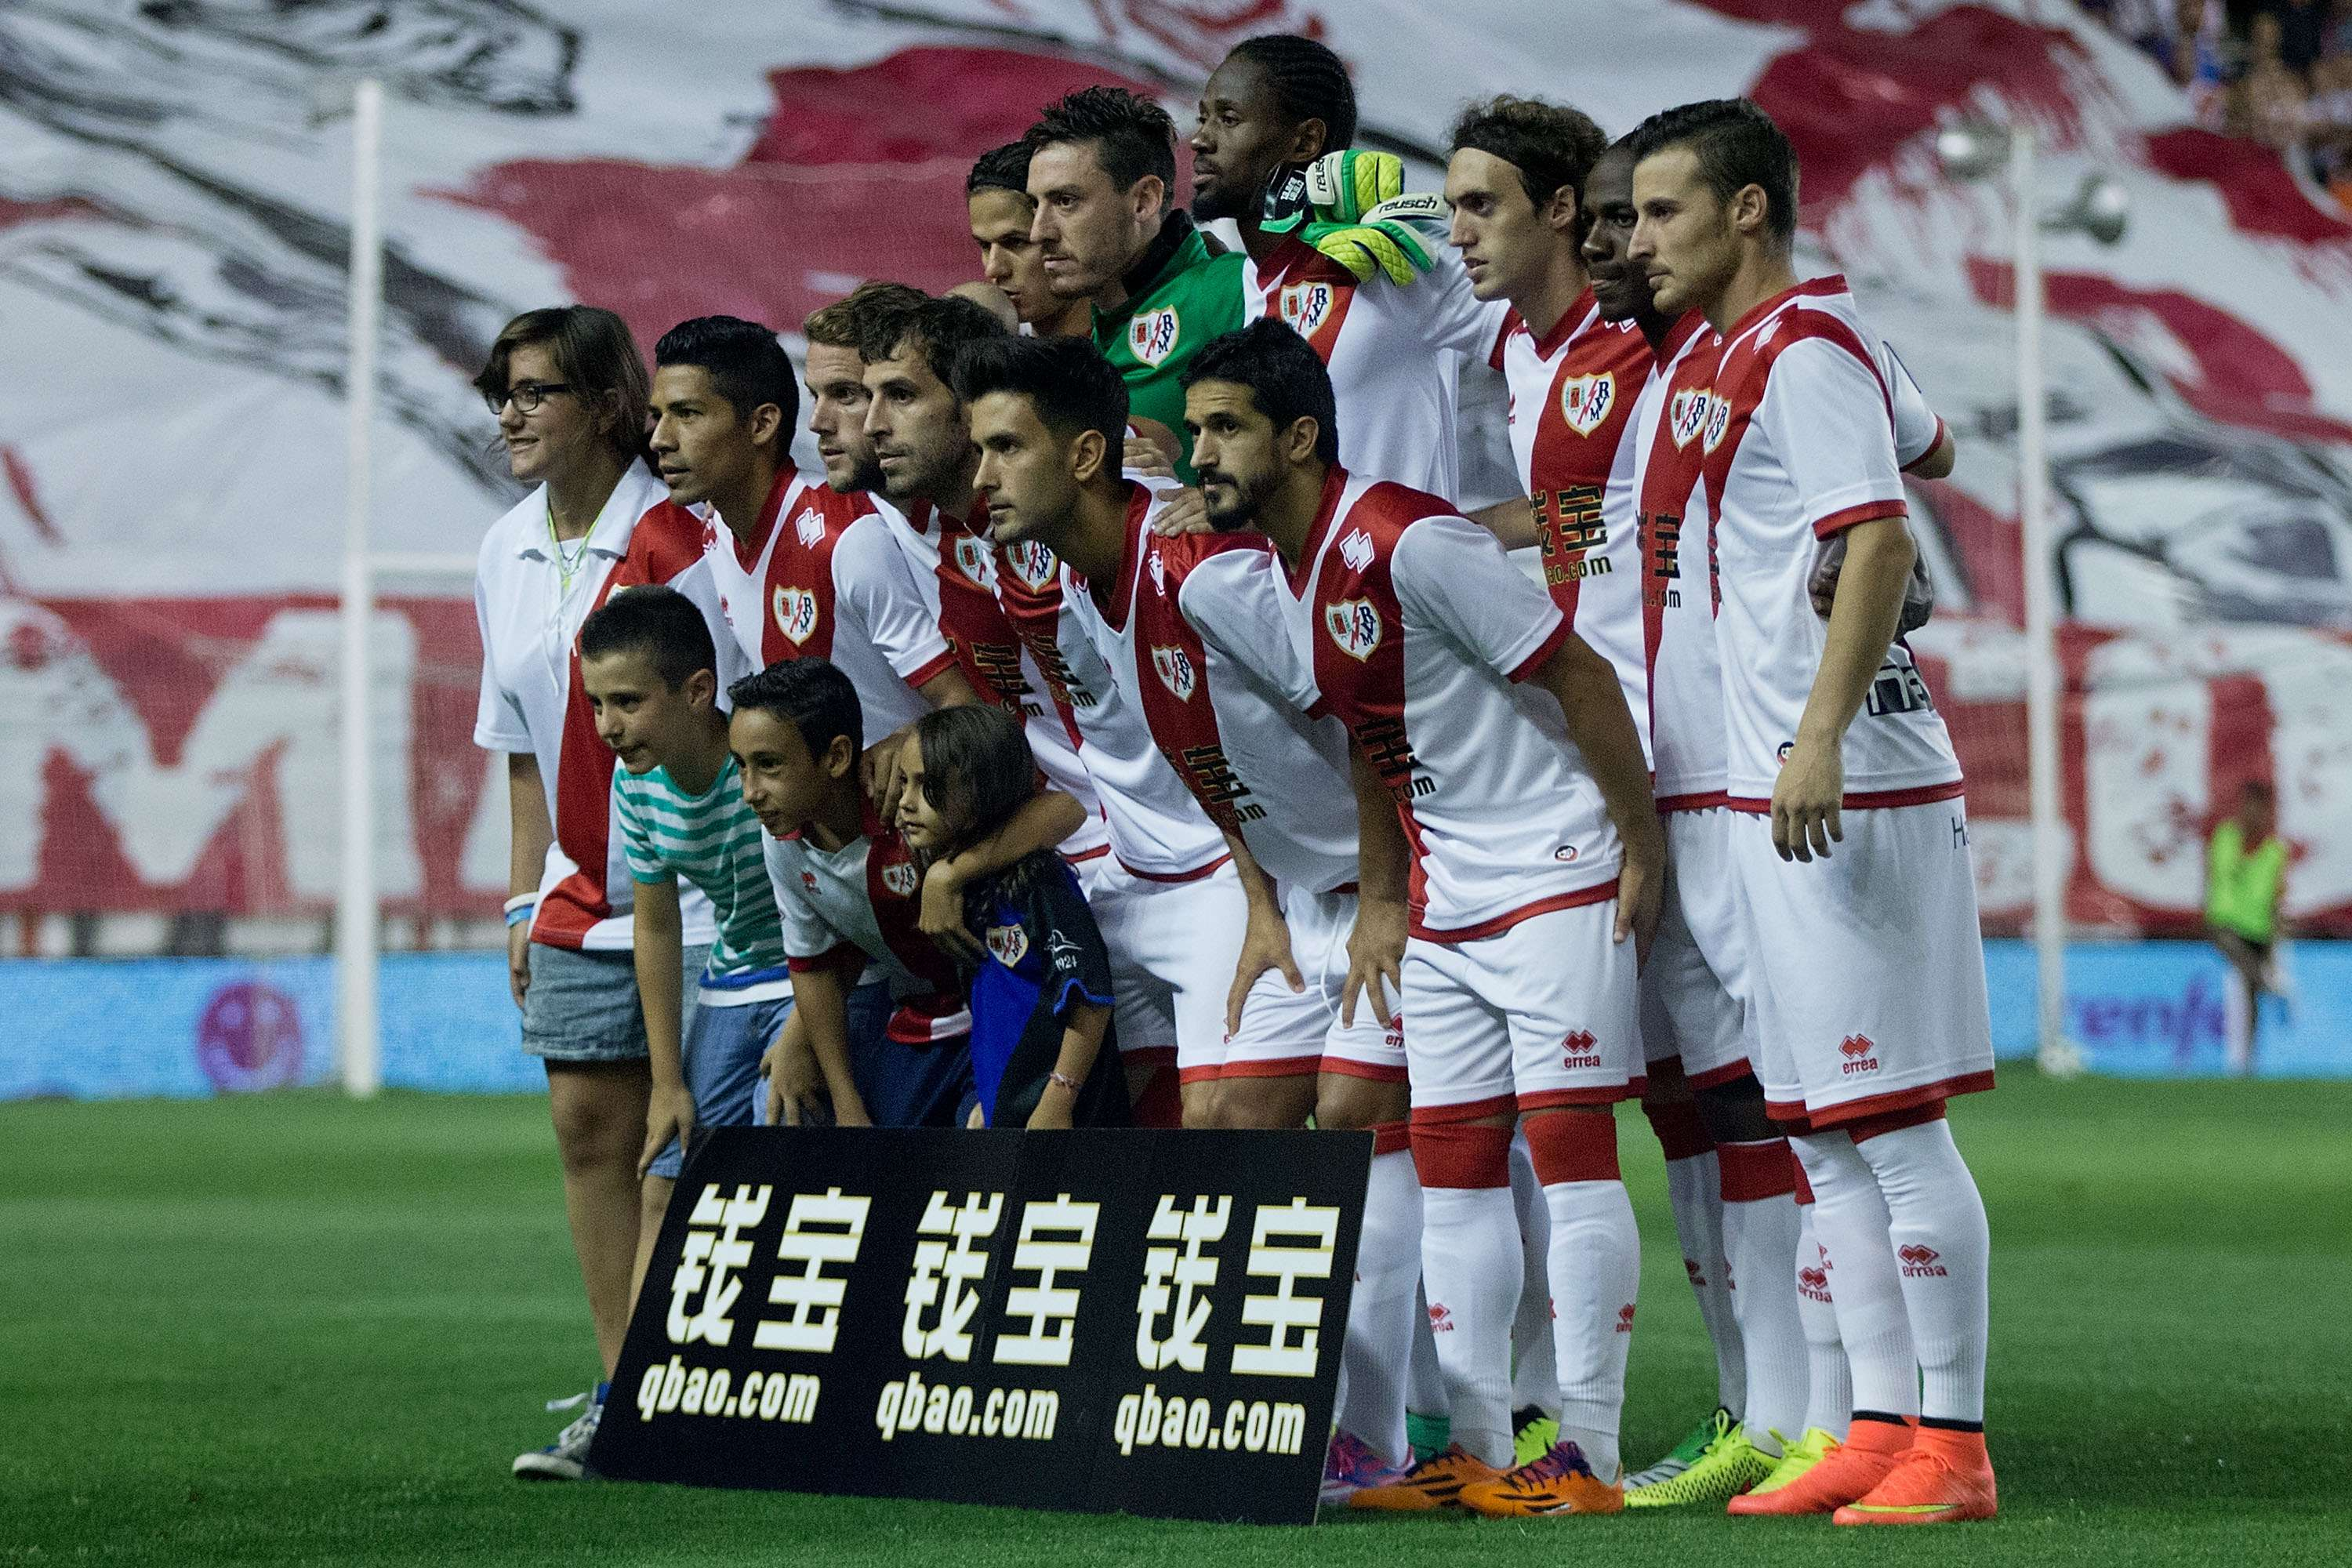 El equipo Rayo Vallecano se unió a una noble causa. Foto: Getty Images